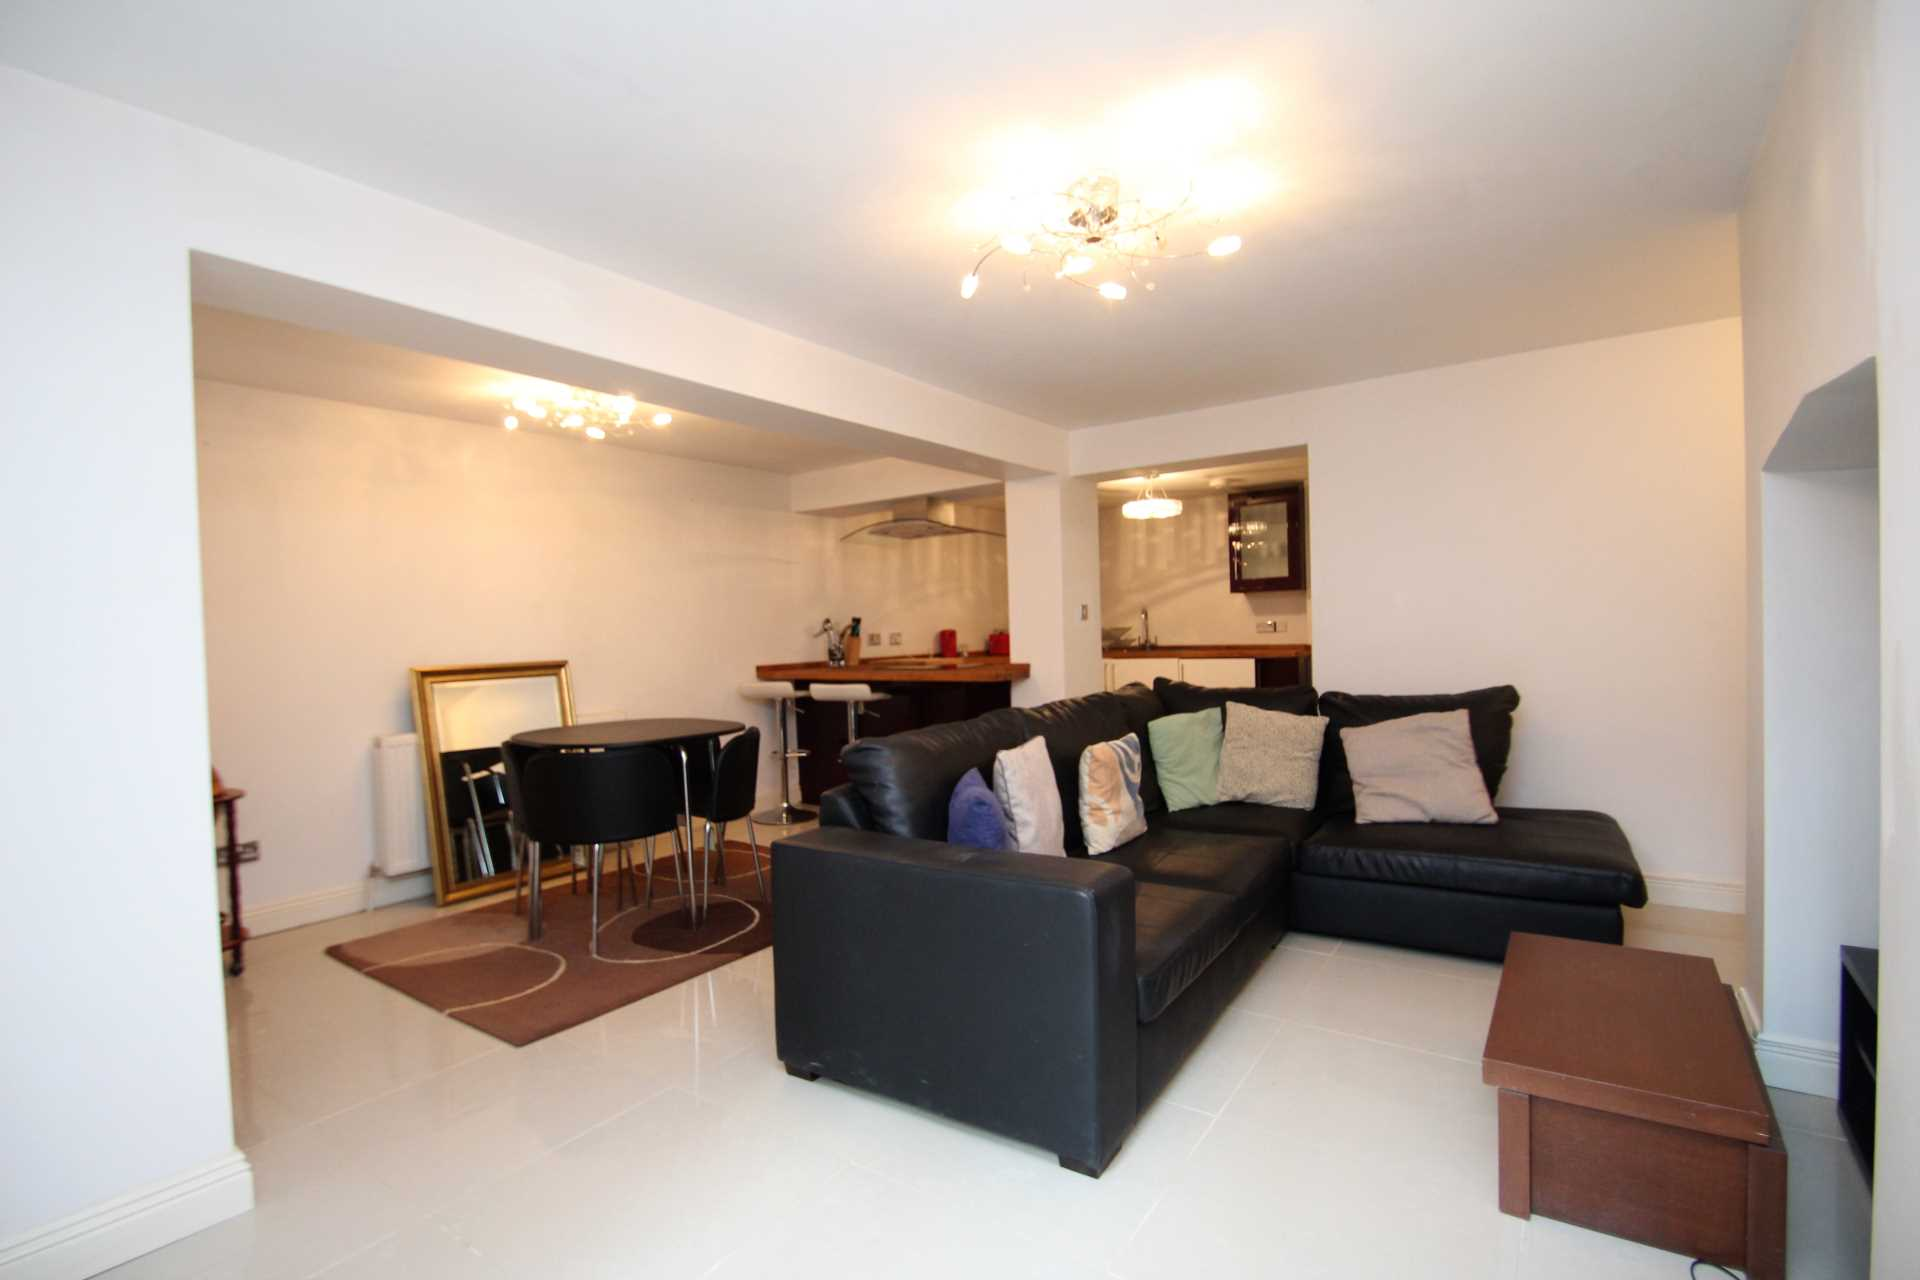 1 Bedroom Flat, Basement Apartment, Walton Street